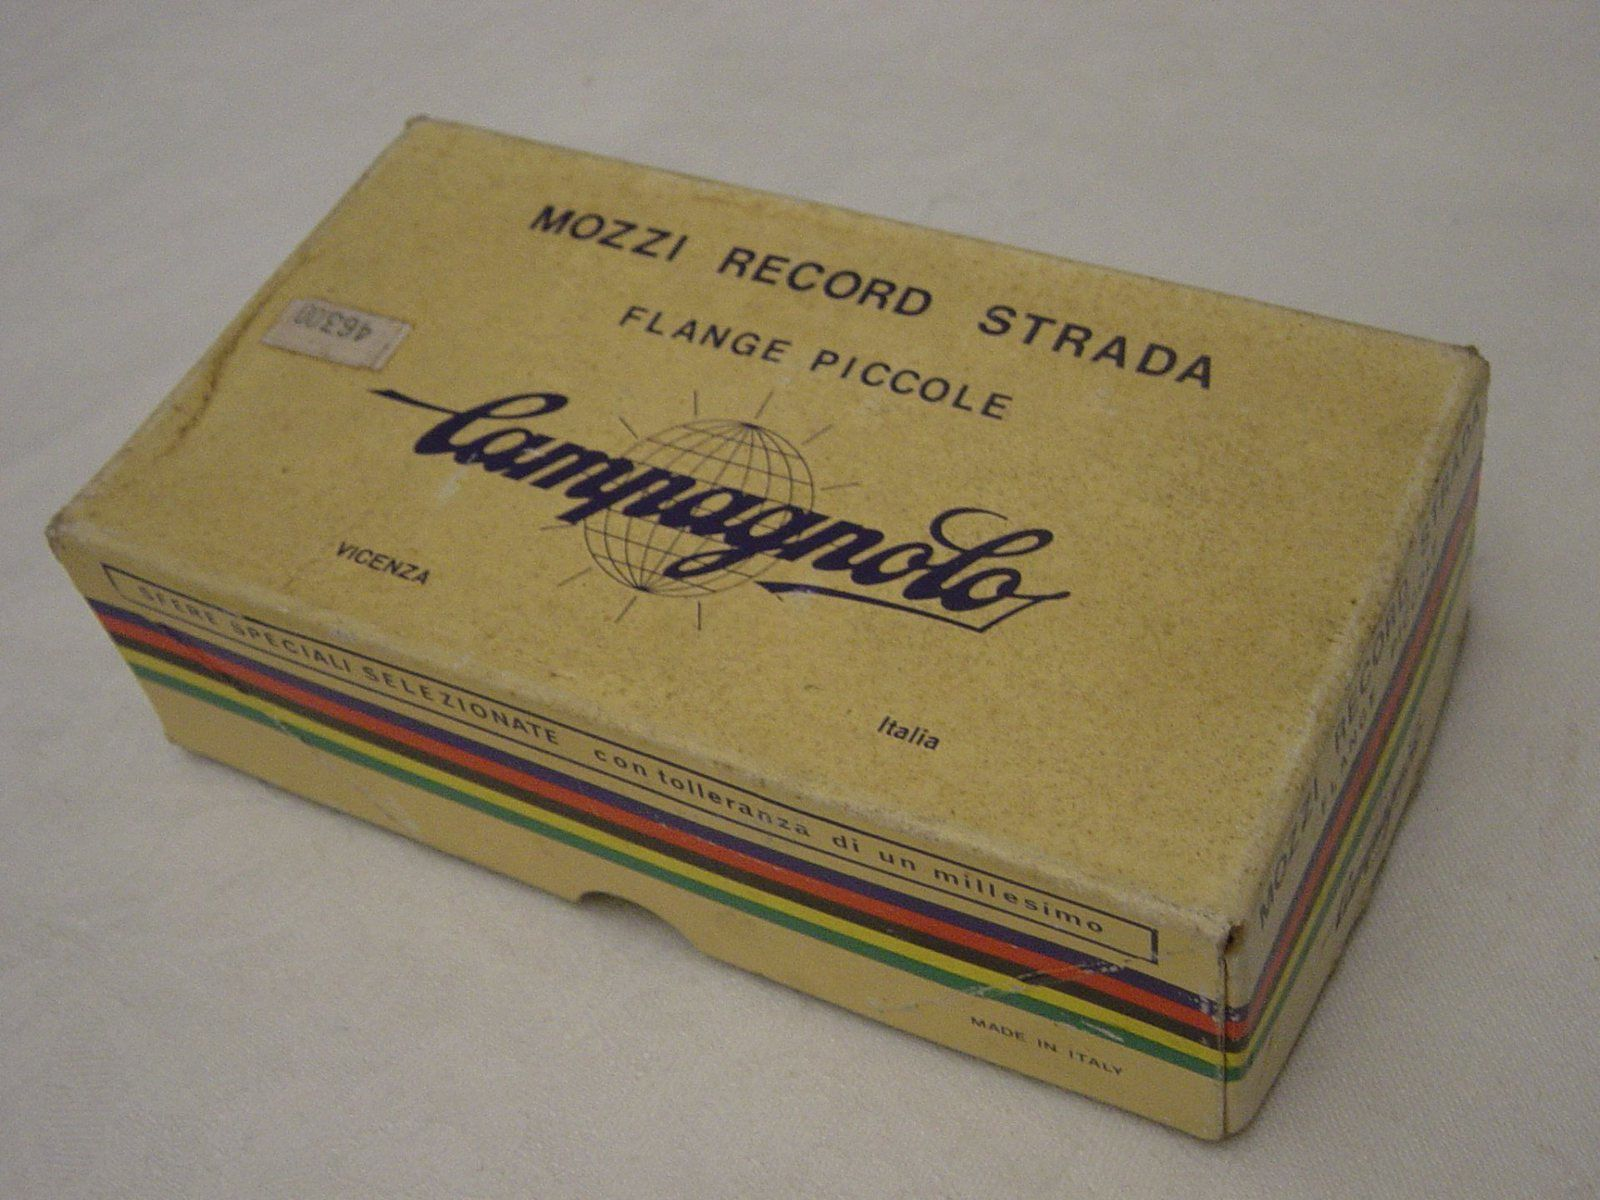 Campagnolo Record Petites flasques